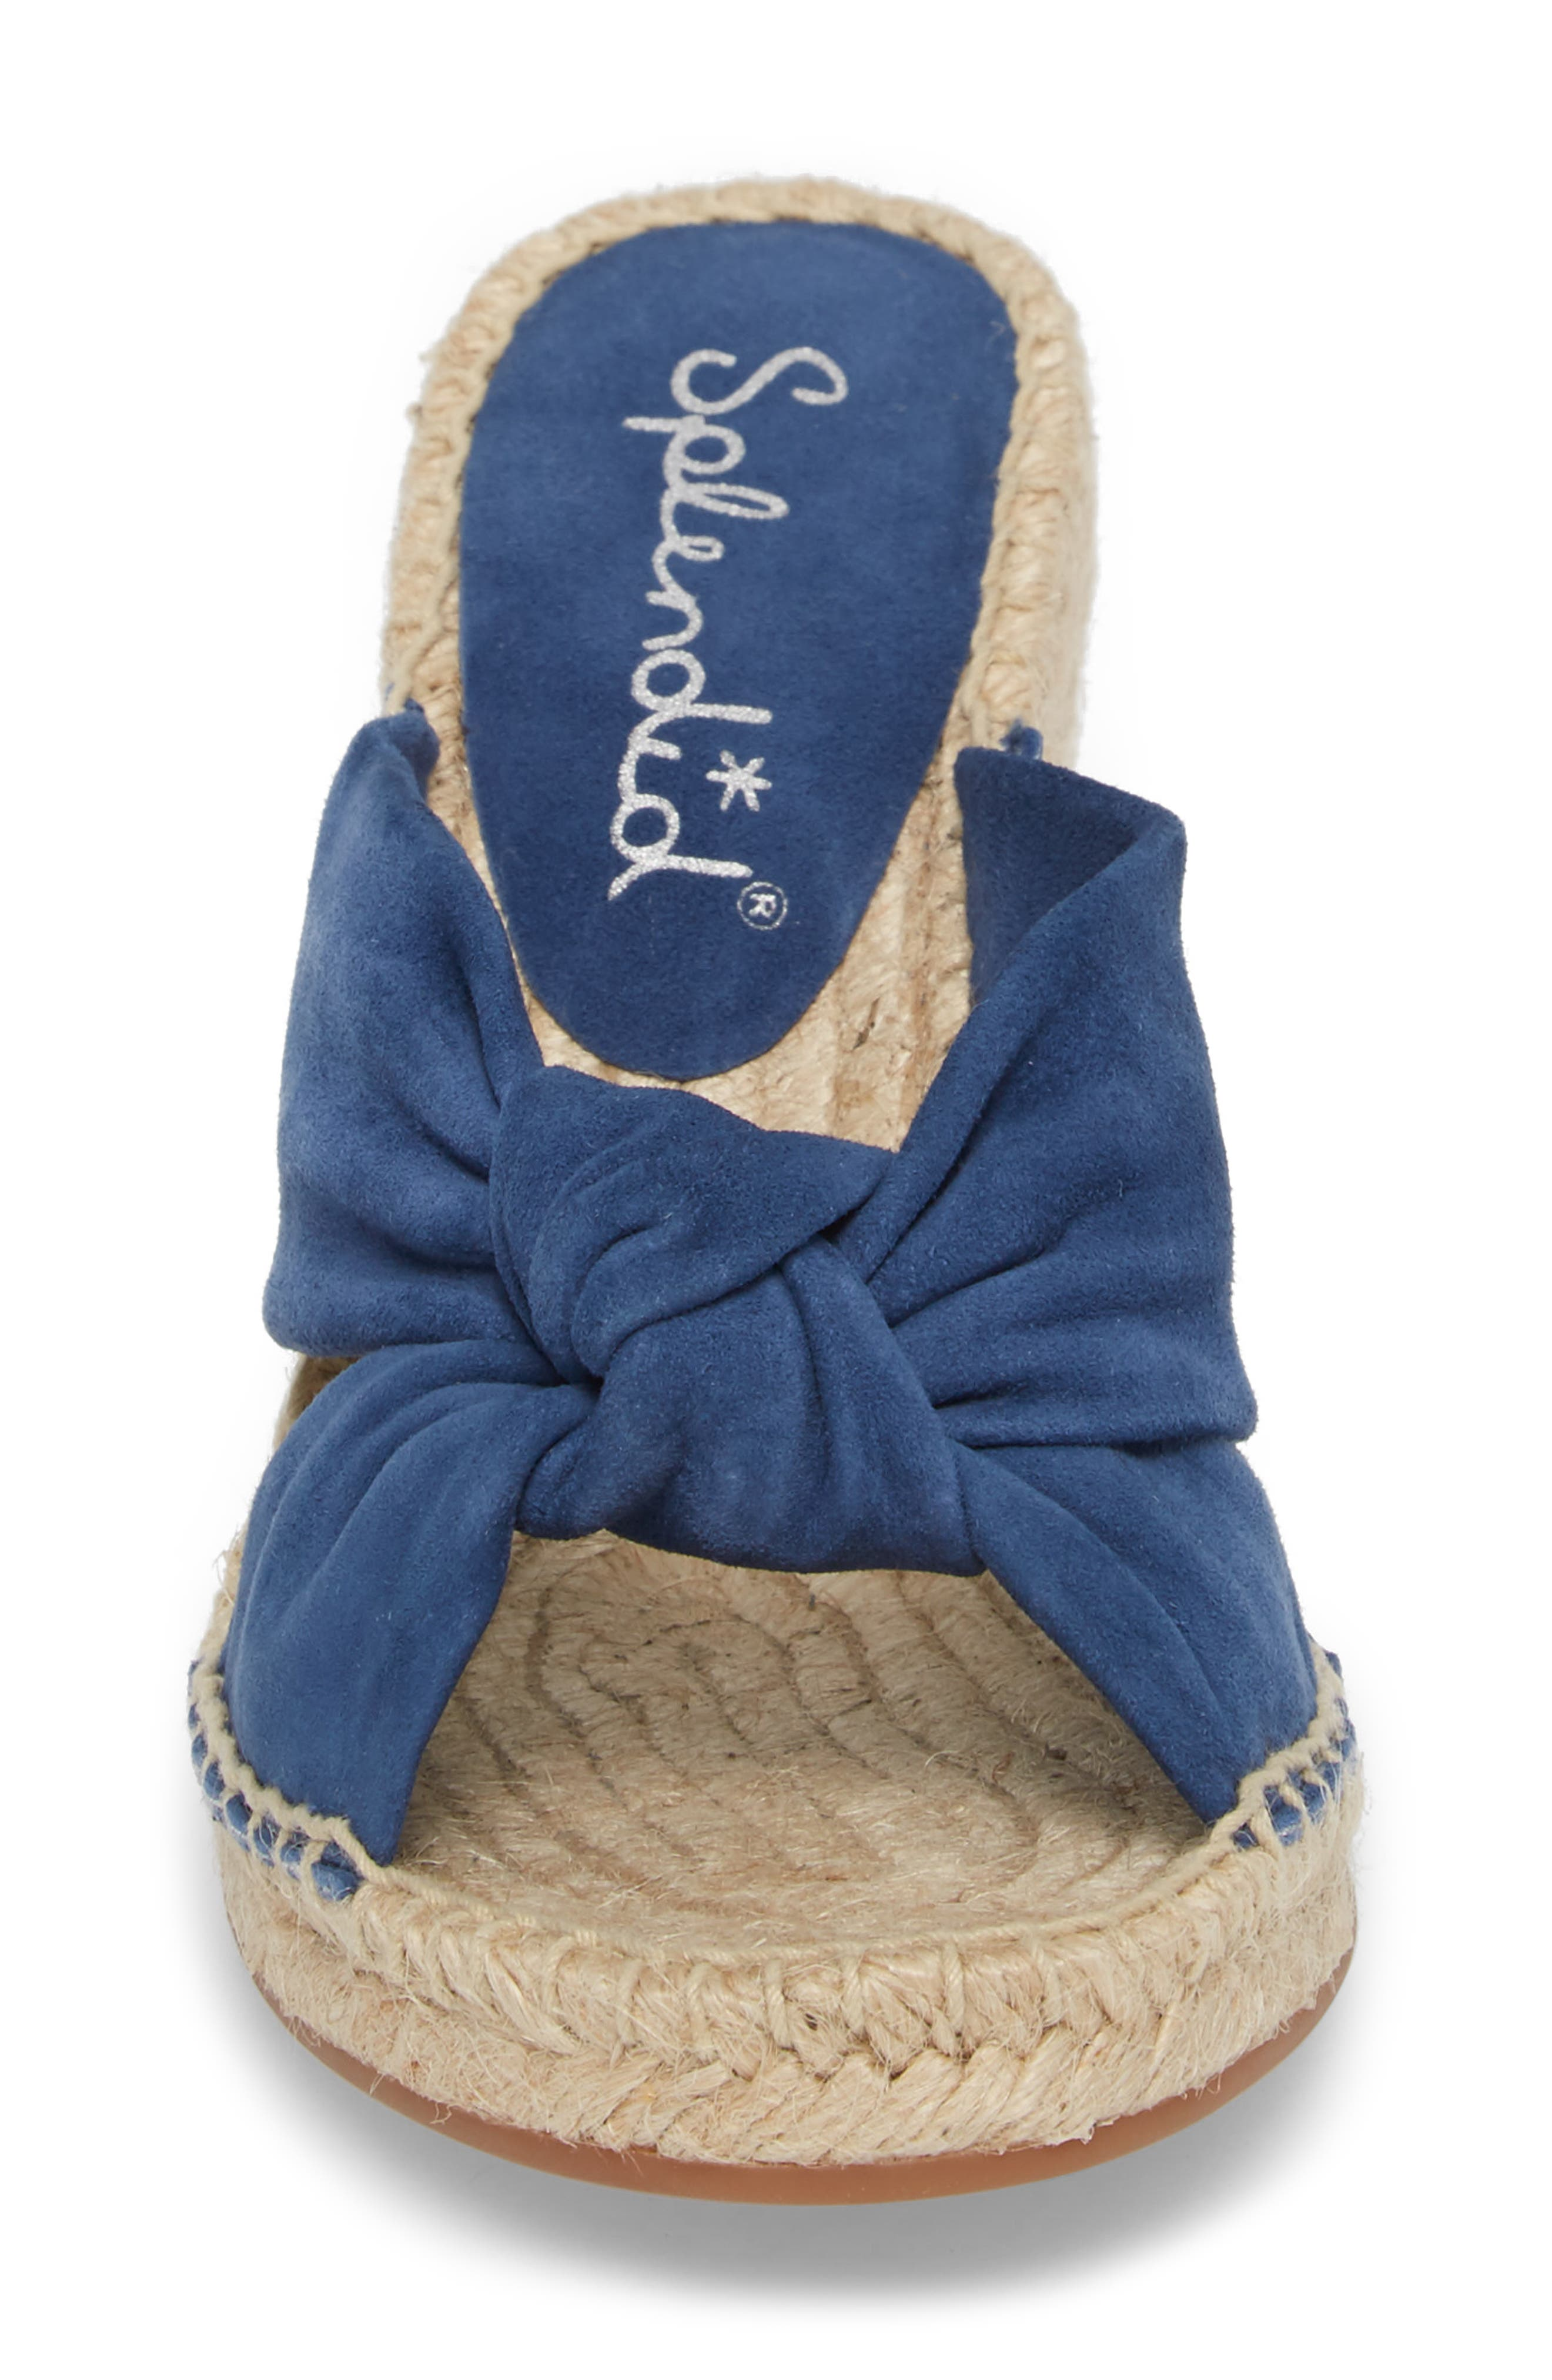 Bautista Knotted Wedge Sandal,                             Alternate thumbnail 4, color,                             DENIM FABRIC